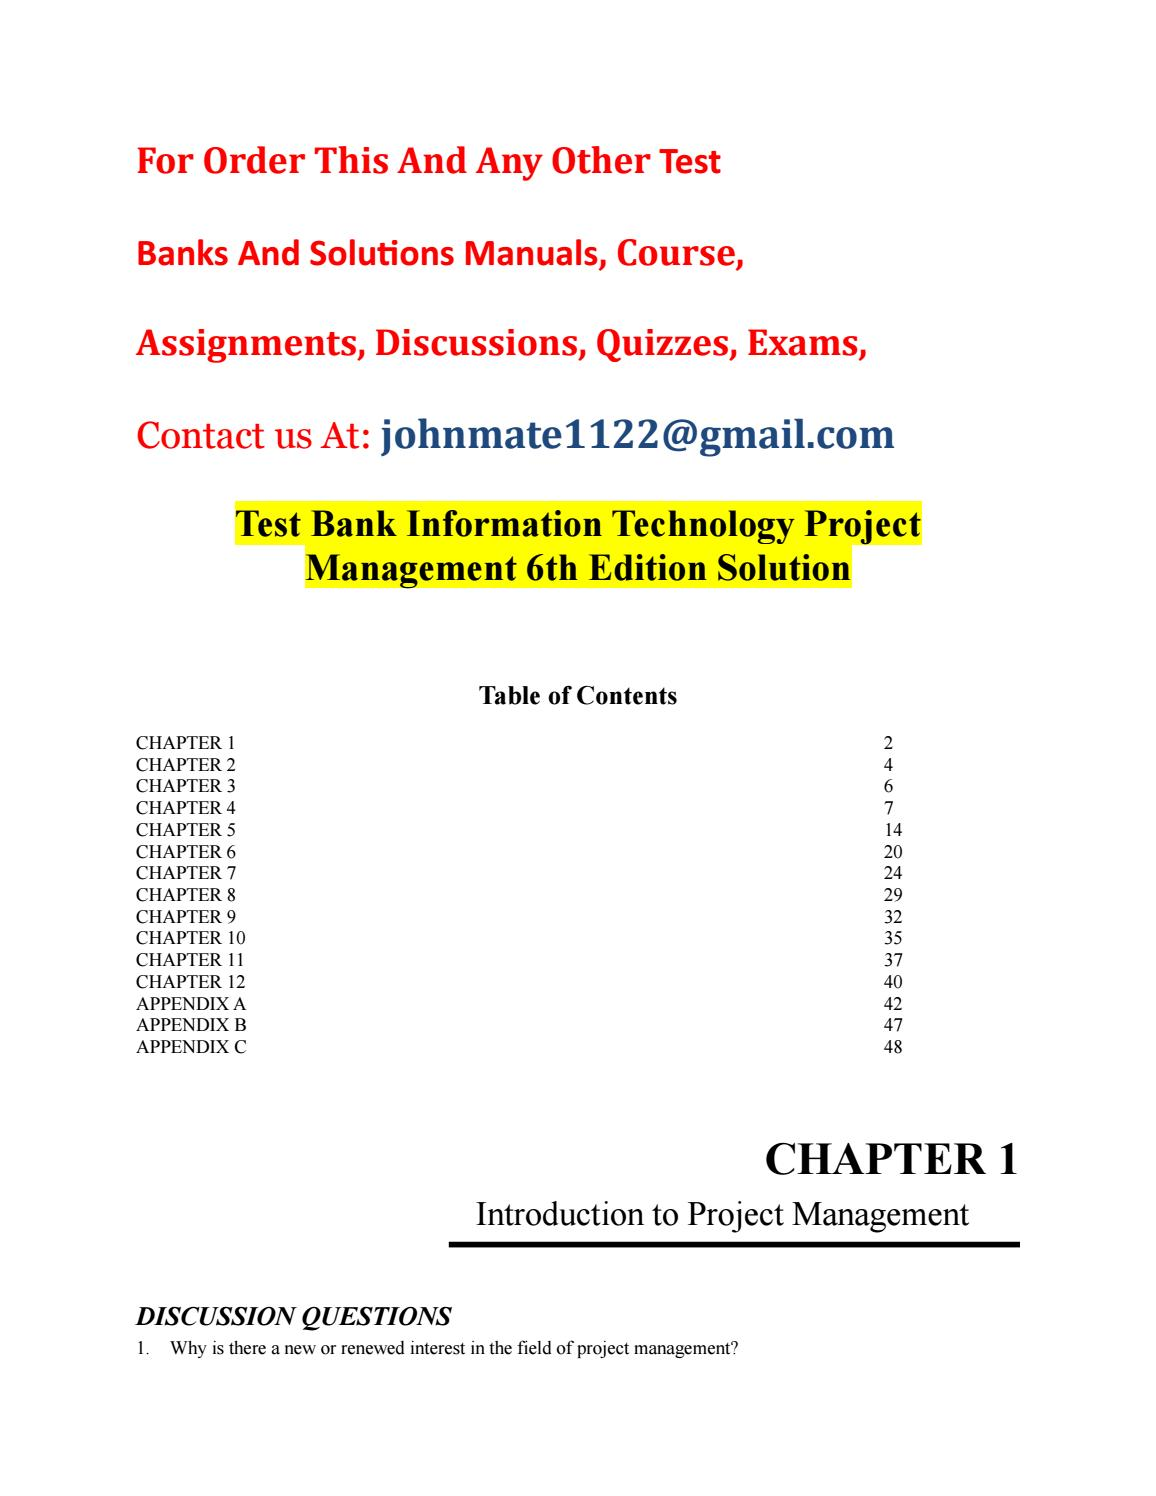 Test bank information technology project management 6th